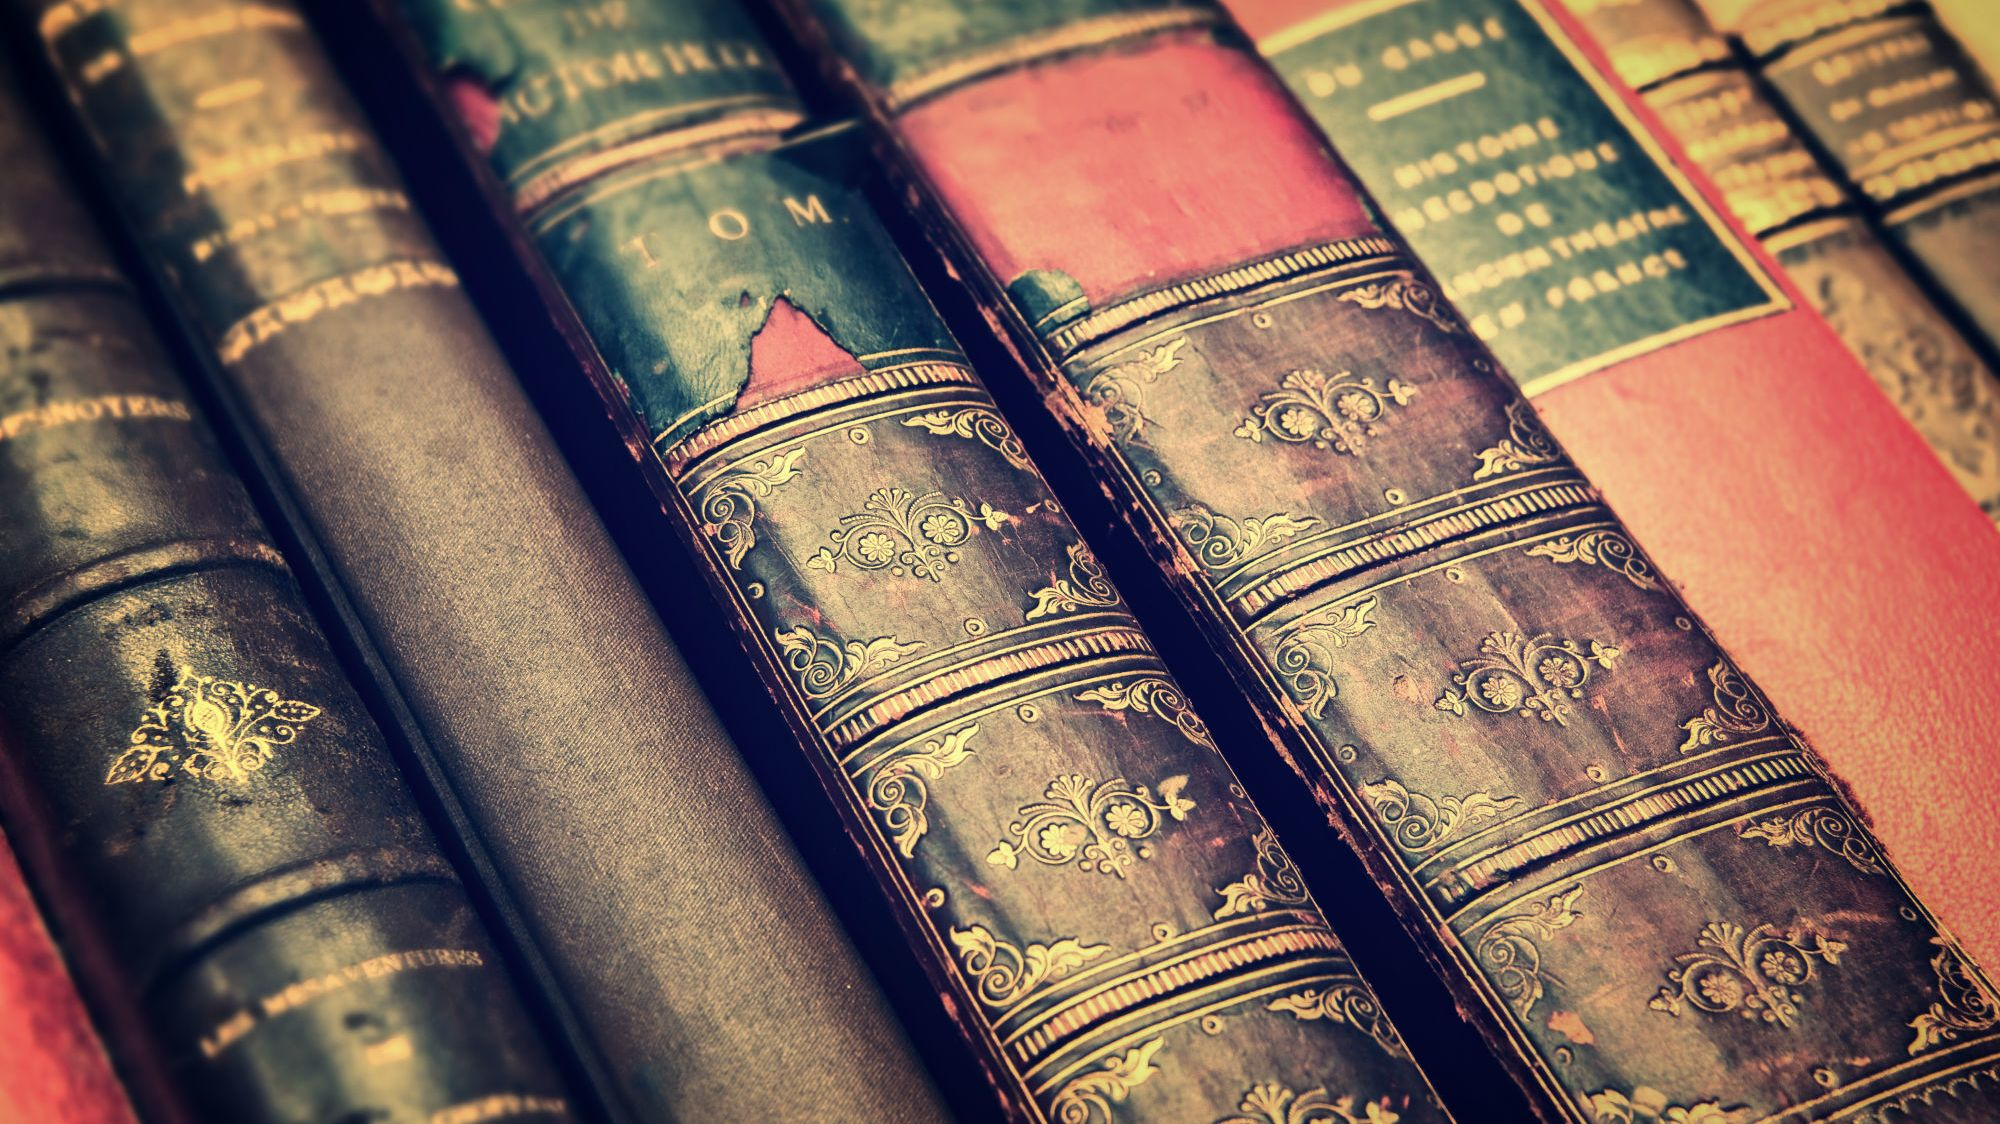 5 Amazing Things Found in Old Books